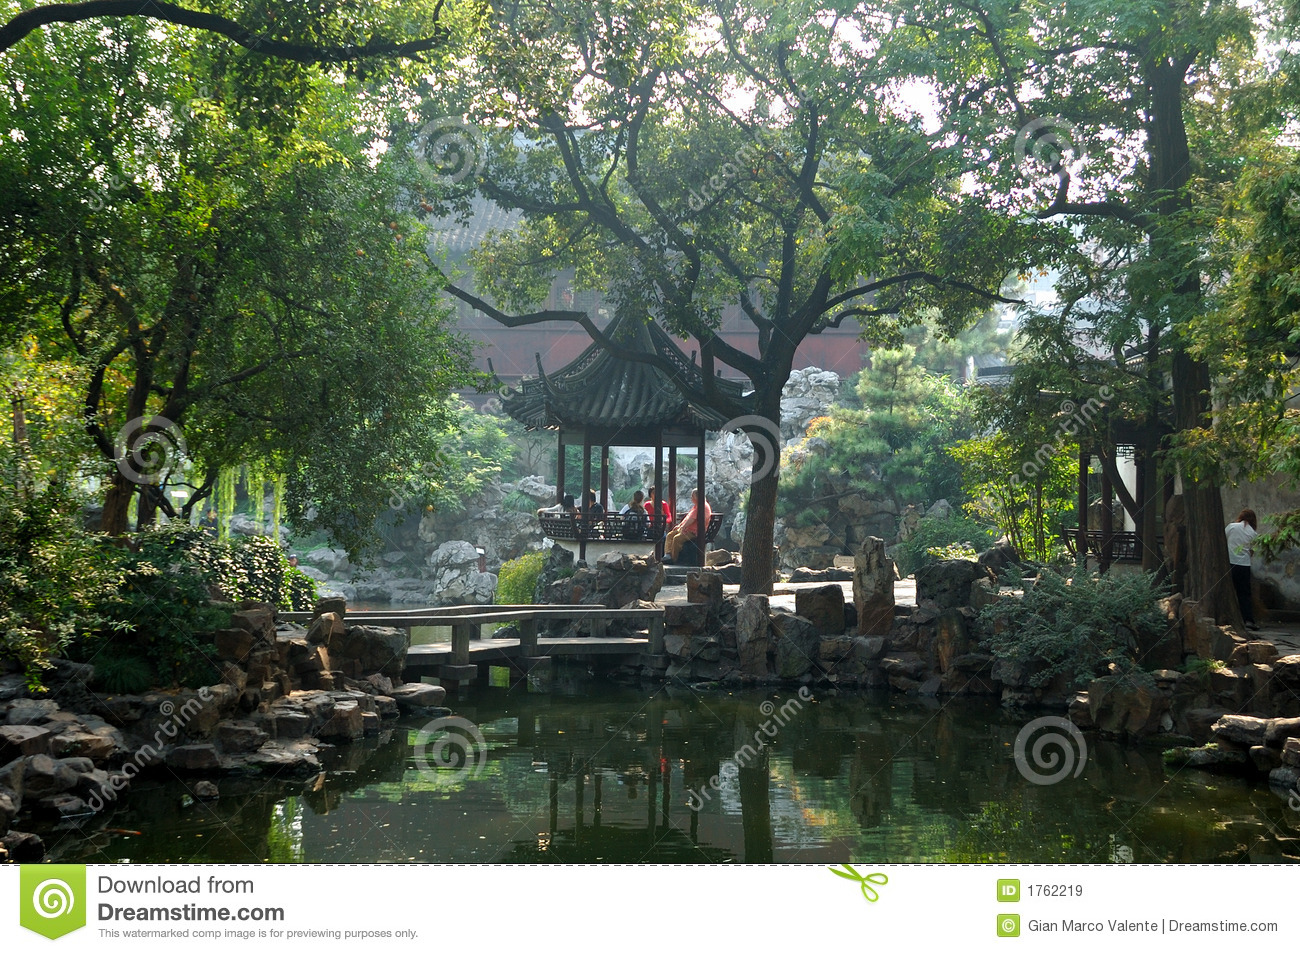 Jardin chinois images libres de droits image 1762219 for Conception jardin chinois